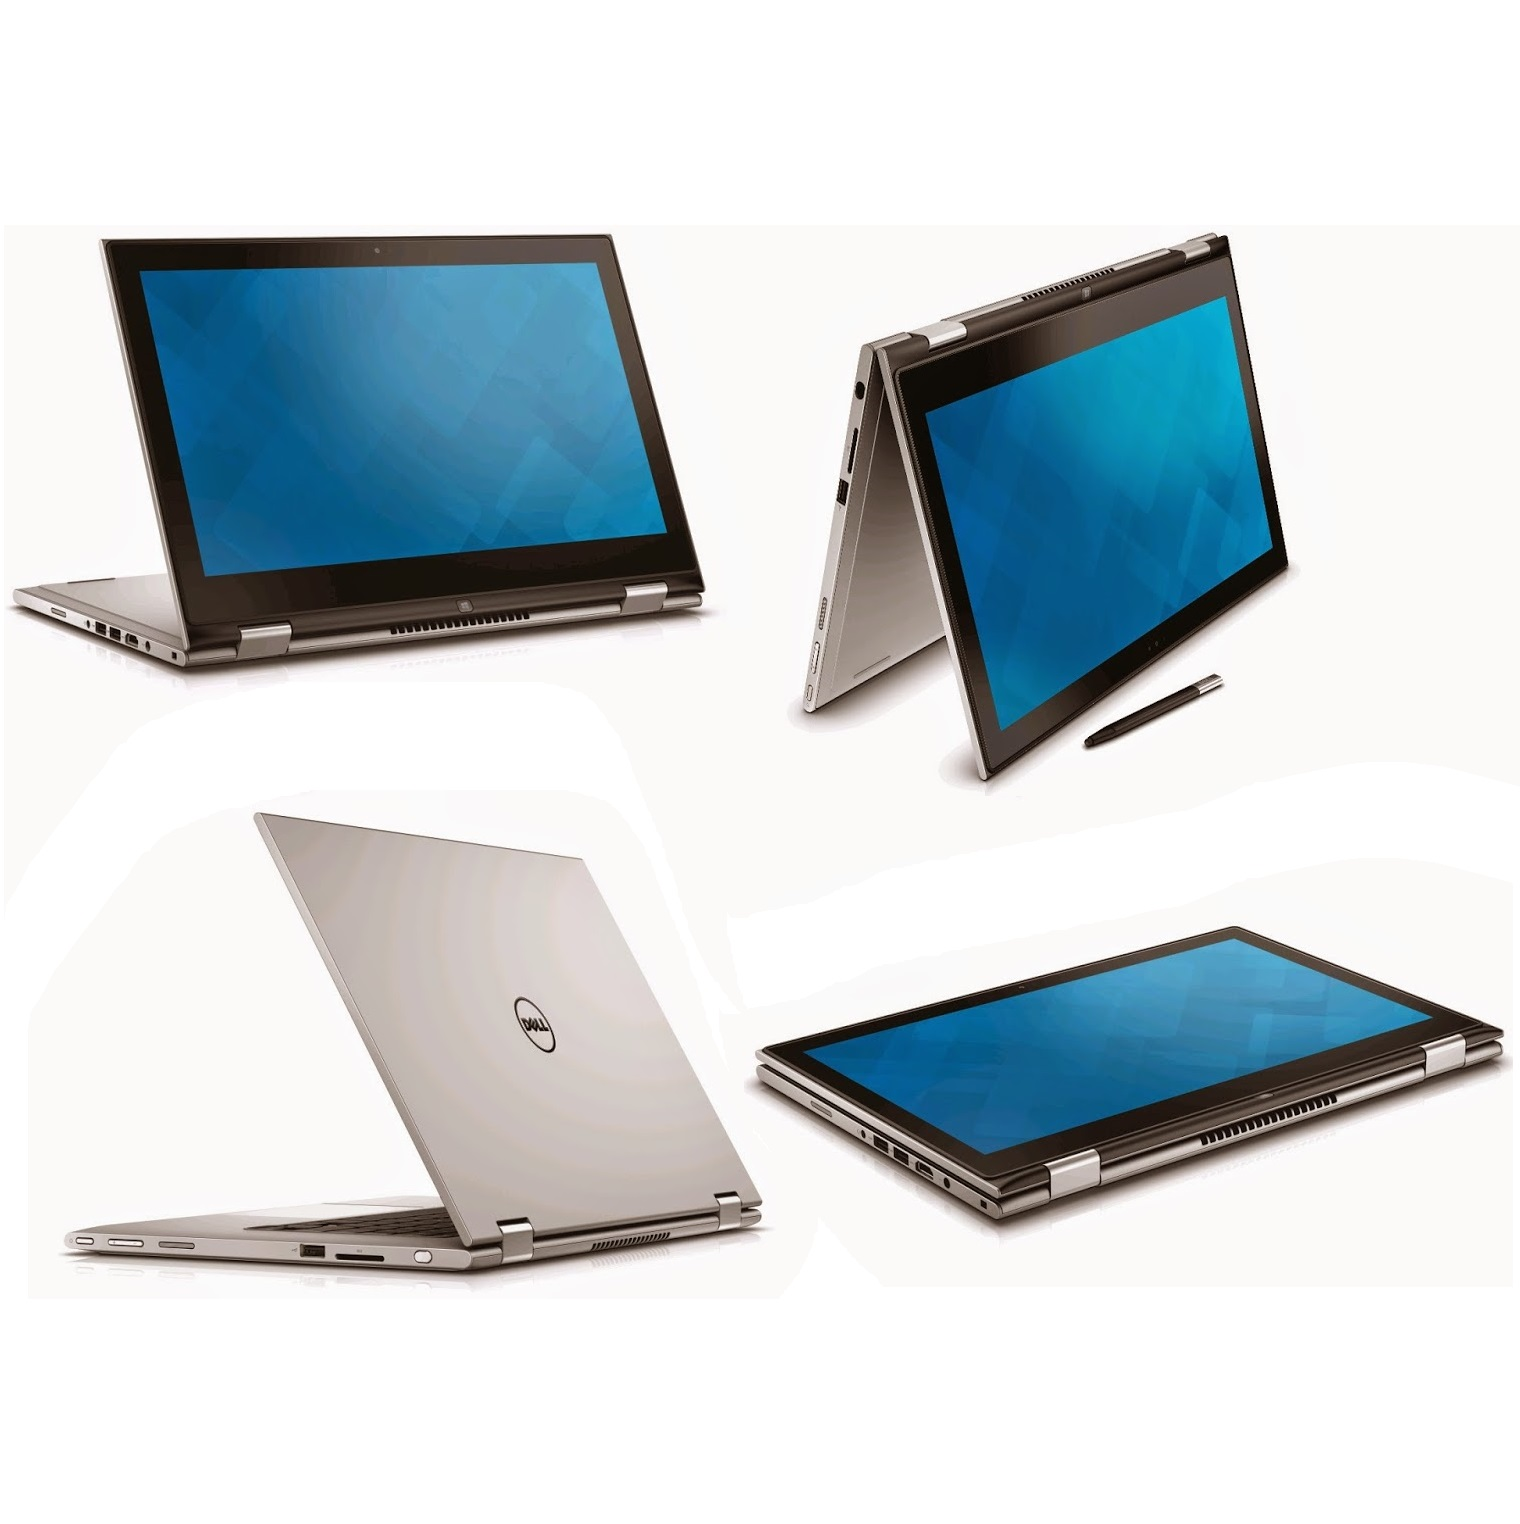 """DELL INSPIRON  N7348- C3I55003W(Silver) - I5(5200U)/ 8G/ 500G/ No DVD/ 13.3"""" Flip/ Led Key/ Touch/ Win 10"""